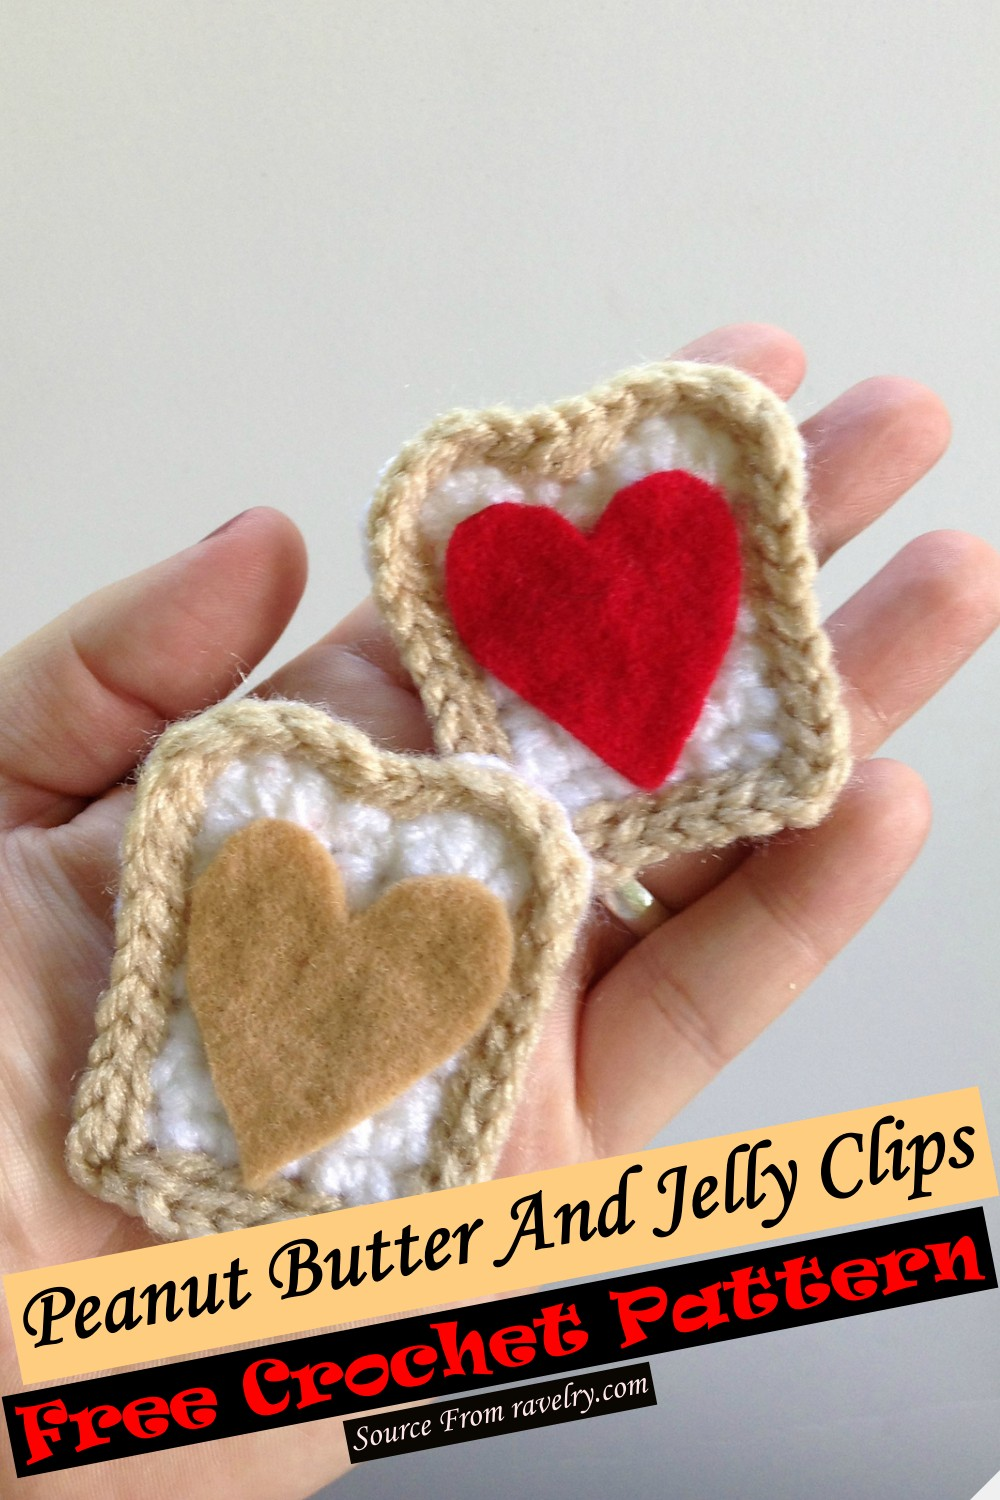 Free Crochet Peanut Butter And Jelly Clips Pattern